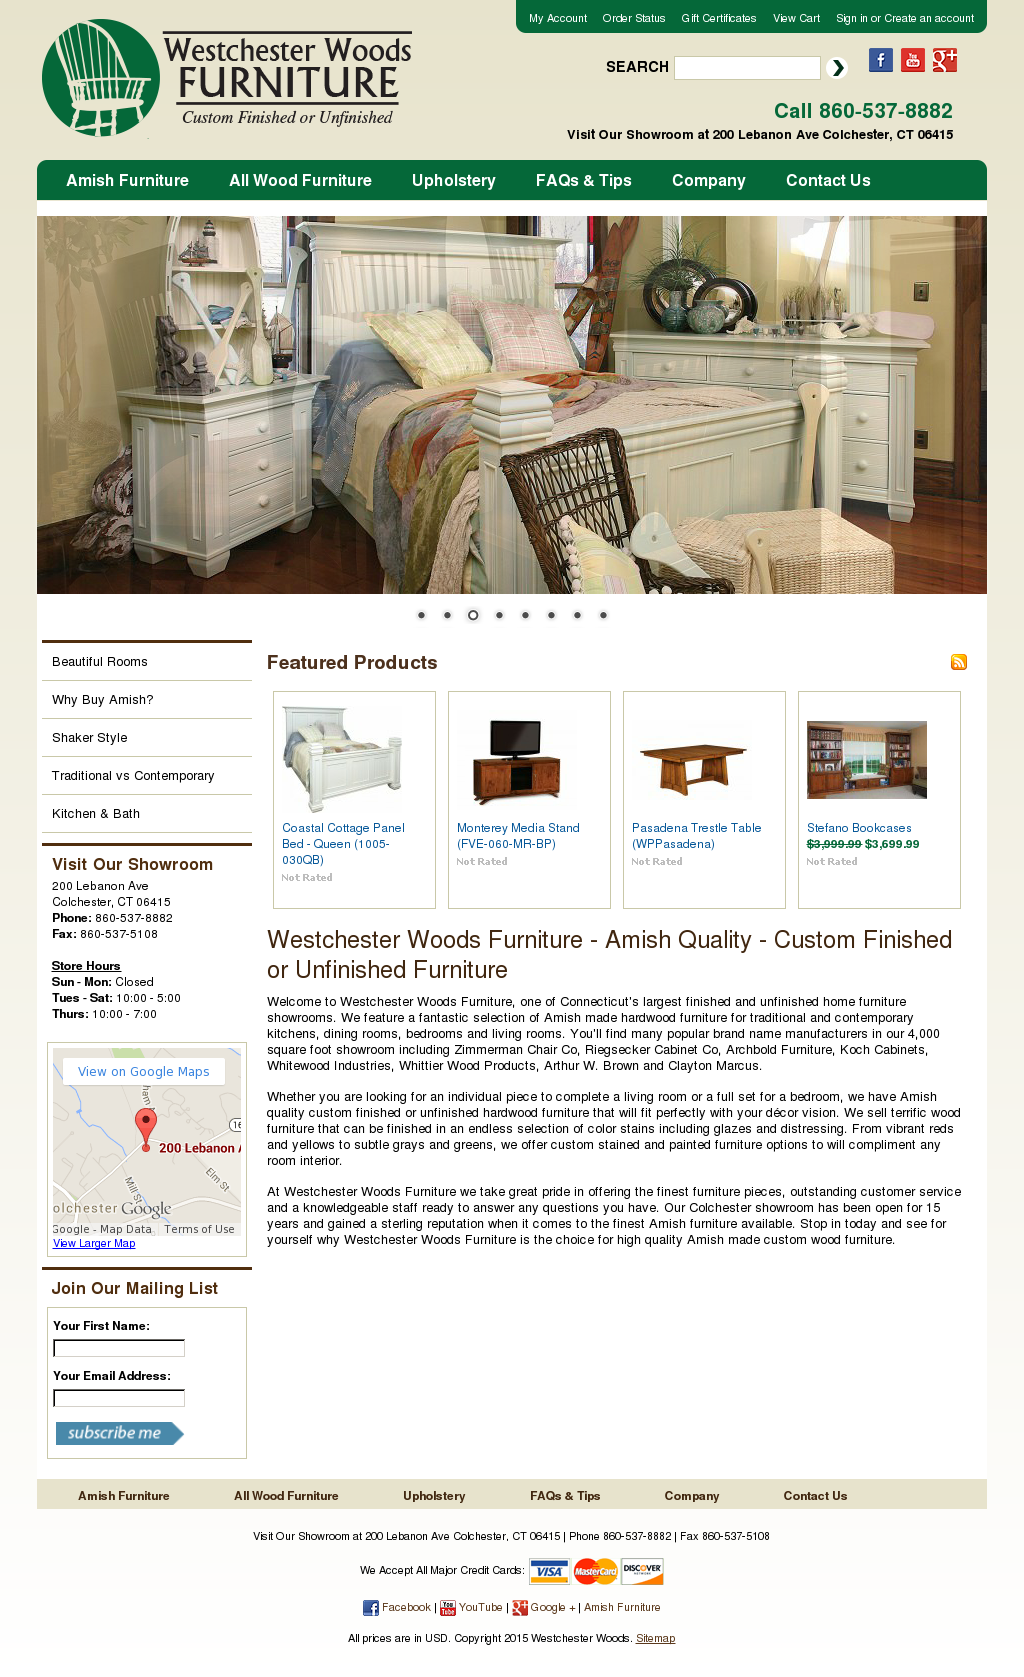 Westchester Woods Furniture Competitors, Revenue And Employees   Owler  Company Profile